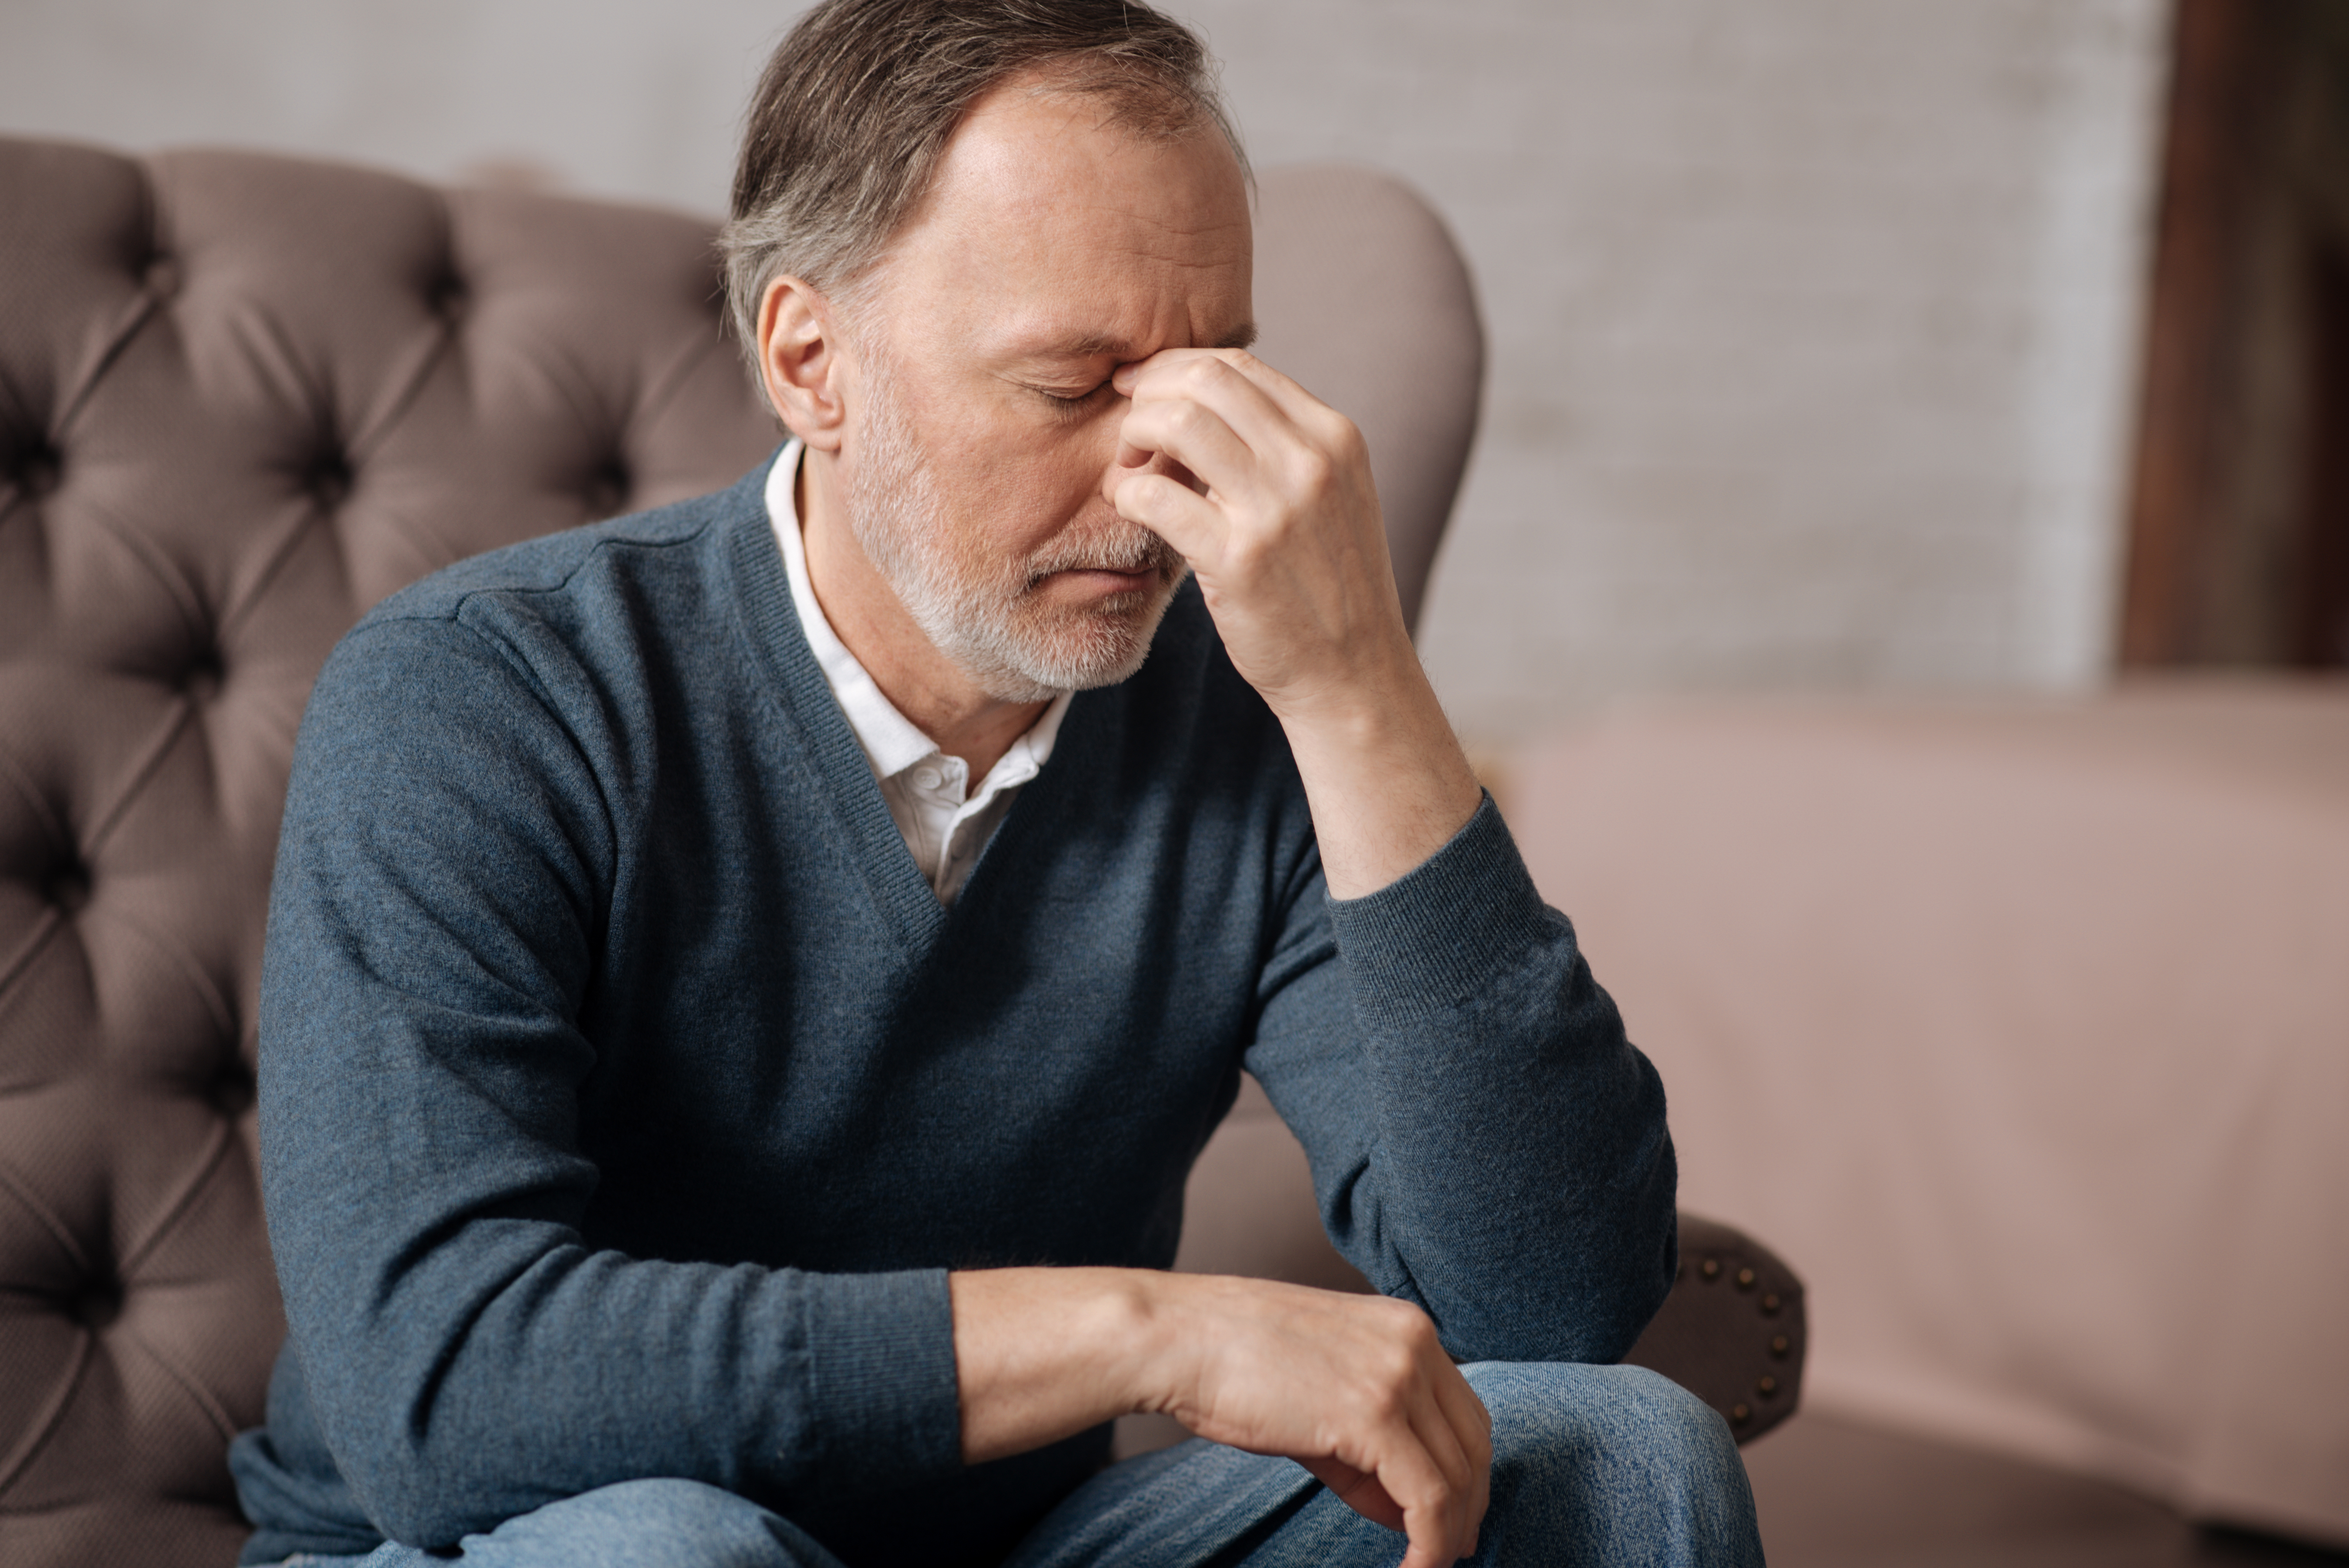 Top 7 Health Issues for Men